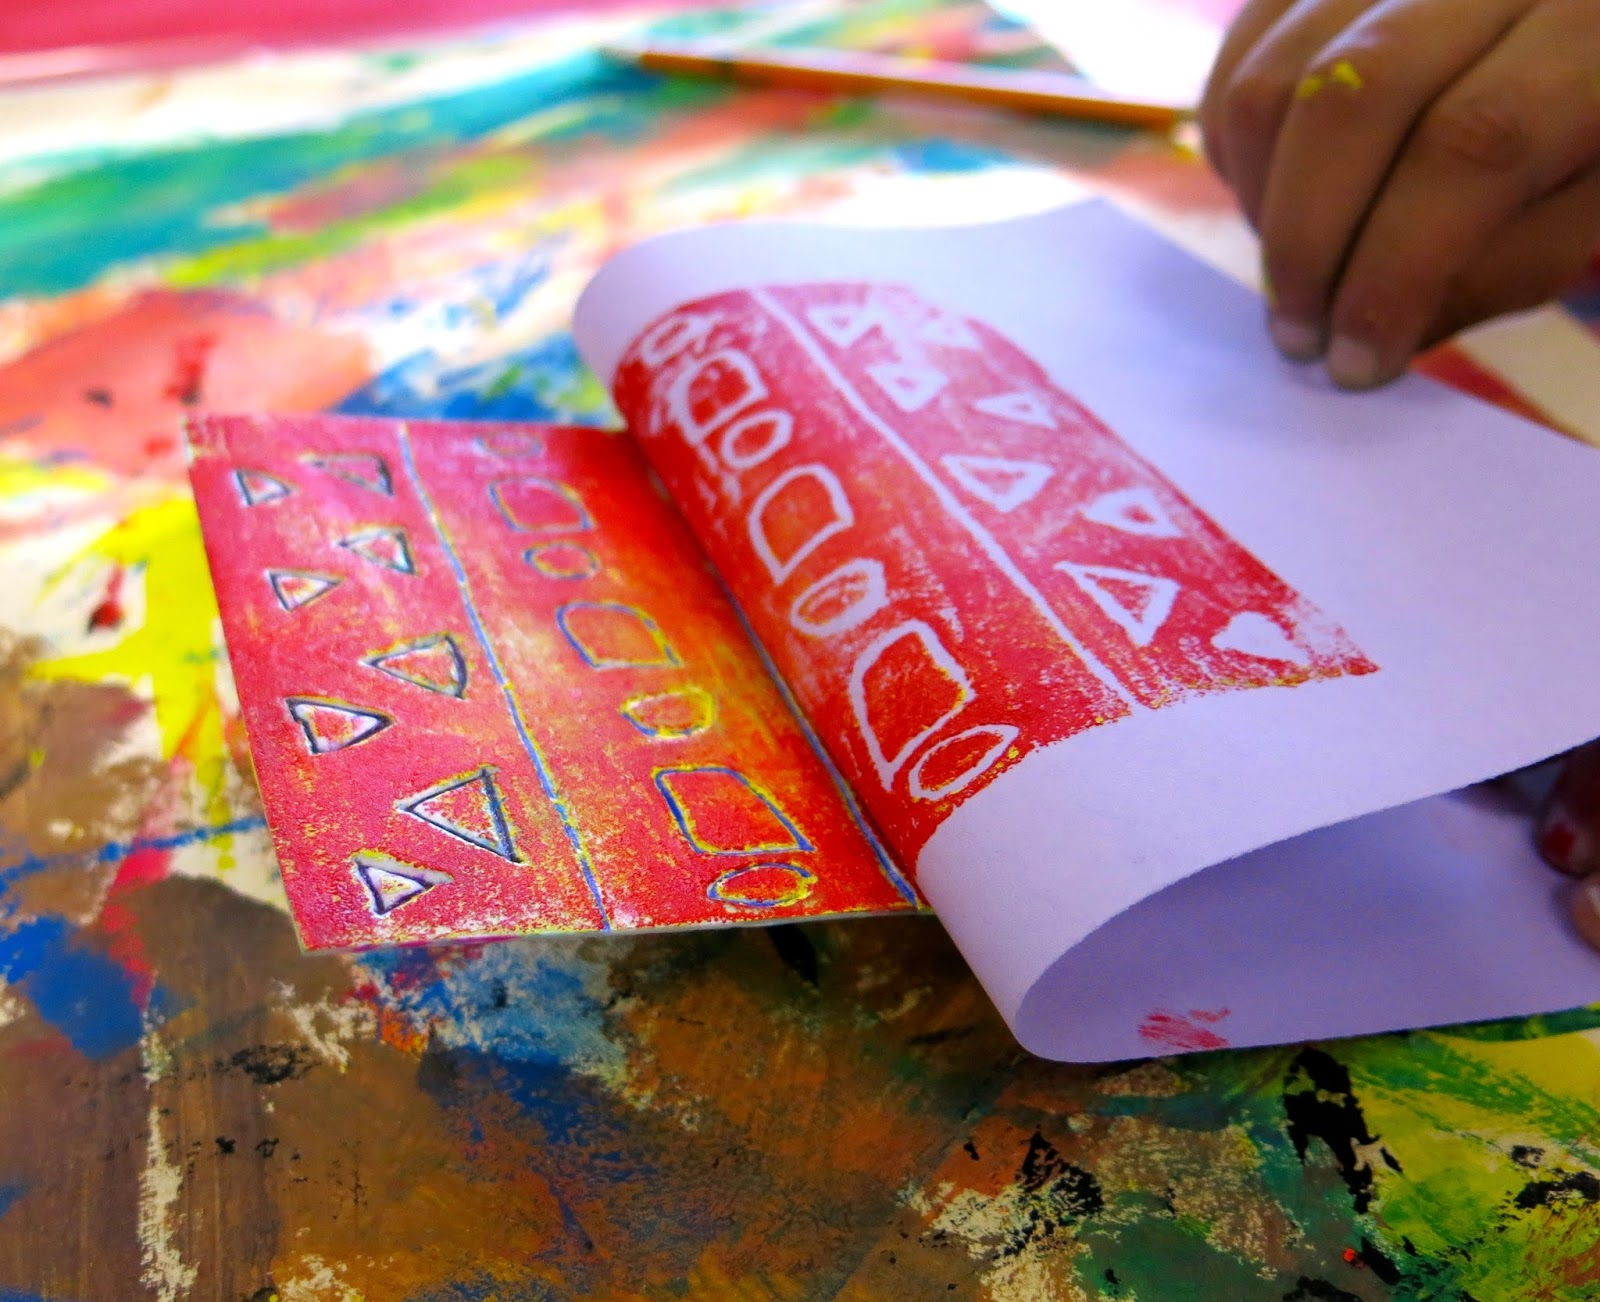 Get Creative With Printmaking at The Rye Arts Center